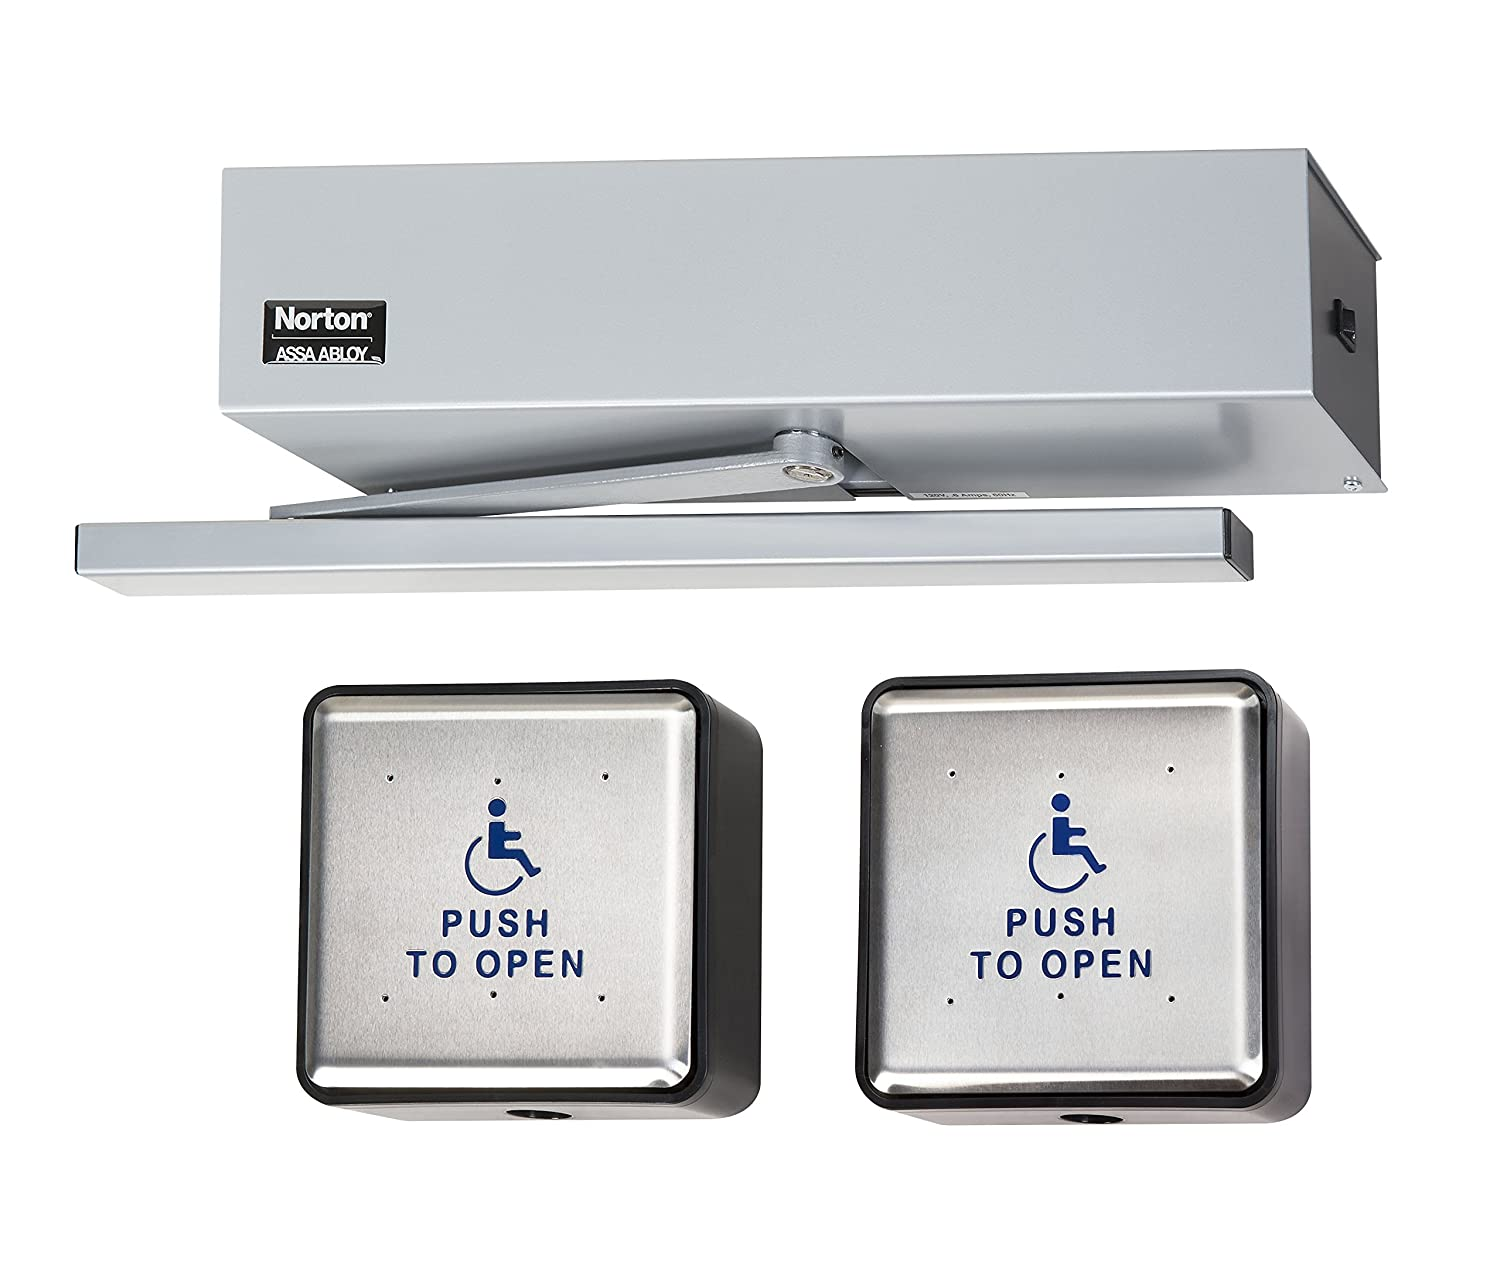 Norton Door Controls 5610RFIX531(2) x 689 5600 Series Aluminum Powered Door Closer ADA Activation Switch Included Aluminum Finish Amazon.com Industrial ...  sc 1 st  Amazon.com : norton door operator - pezcame.com